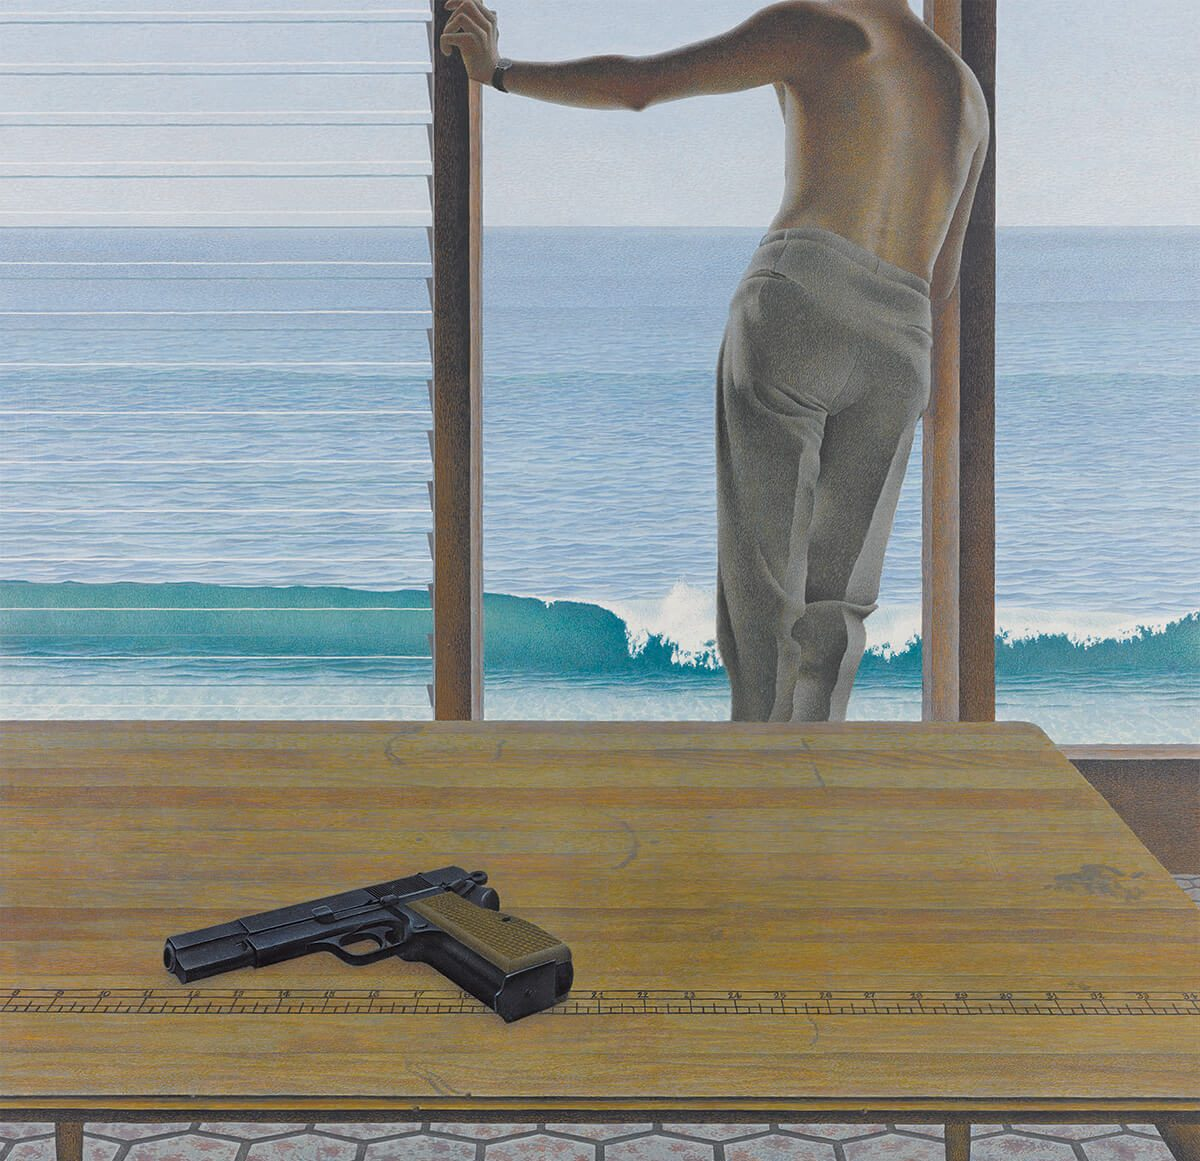 art books 25 alex colville pacific e1606750115740 20 Things You Didn't Know About The 1995 Film Heat